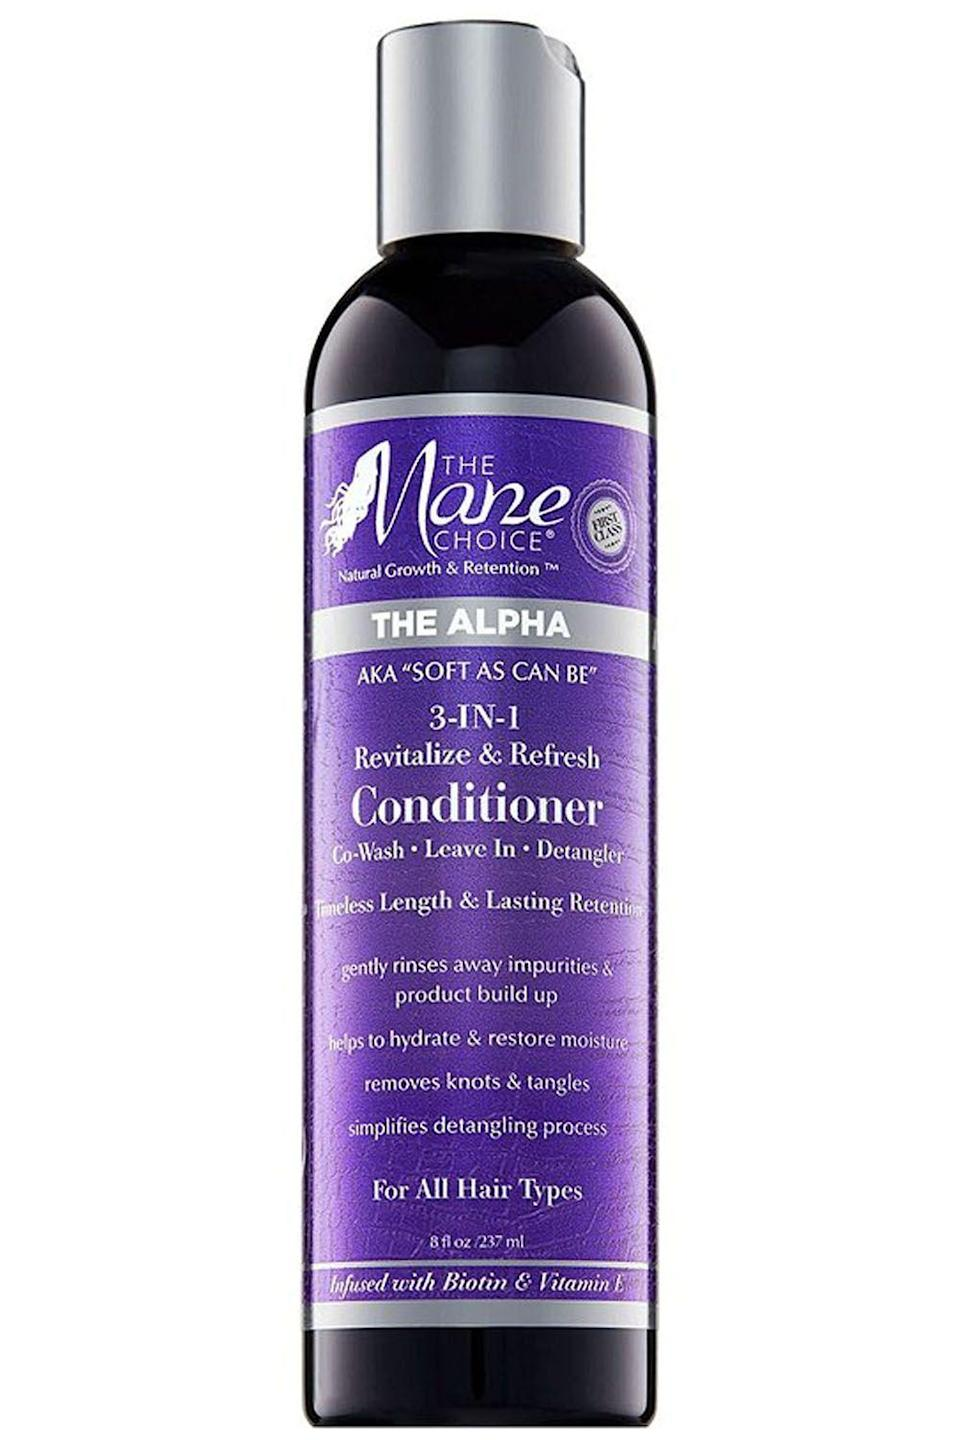 """<p><strong>The Mane Choice</strong></p><p>ulta.com</p><p><strong>$13.99</strong></p><p><a href=""""https://go.redirectingat.com?id=74968X1596630&url=https%3A%2F%2Fwww.ulta.com%2Falpha-soft-as-can-be-3-in-1-revitalize-refresh-conditioner%3FproductId%3Dpimprod2015423&sref=https%3A%2F%2Fwww.cosmopolitan.com%2Fstyle-beauty%2Fbeauty%2Fg33904669%2Fbest-leave-in-conditioners-for-natural-hair%2F"""" rel=""""nofollow noopener"""" target=""""_blank"""" data-ylk=""""slk:Shop Now"""" class=""""link rapid-noclick-resp"""">Shop Now</a></p><p>It's like one day we all hated 2-in-1 <a href=""""https://www.cosmopolitan.com/style-beauty/beauty/g2149/best-shampoo-conditioner/"""" rel=""""nofollow noopener"""" target=""""_blank"""" data-ylk=""""slk:shampoo-conditioners"""" class=""""link rapid-noclick-resp"""">shampoo-conditioners</a>, and the next, every brand out there was releasing a hair product that could ~do it all~. I was super skeptical of these multitaskers until this leave-in conditioner came my way. Massage the biotin and tea-tree infused product through your hair for about five minutes, rinse it out, and it becomes a co-wash. Work it in from the roots of your curls to the ends and <strong>it transforms into a conditioning, detangling hybrid.</strong> And it's actually way effective when it comes to all three claims—you love to see it.<br></p>"""